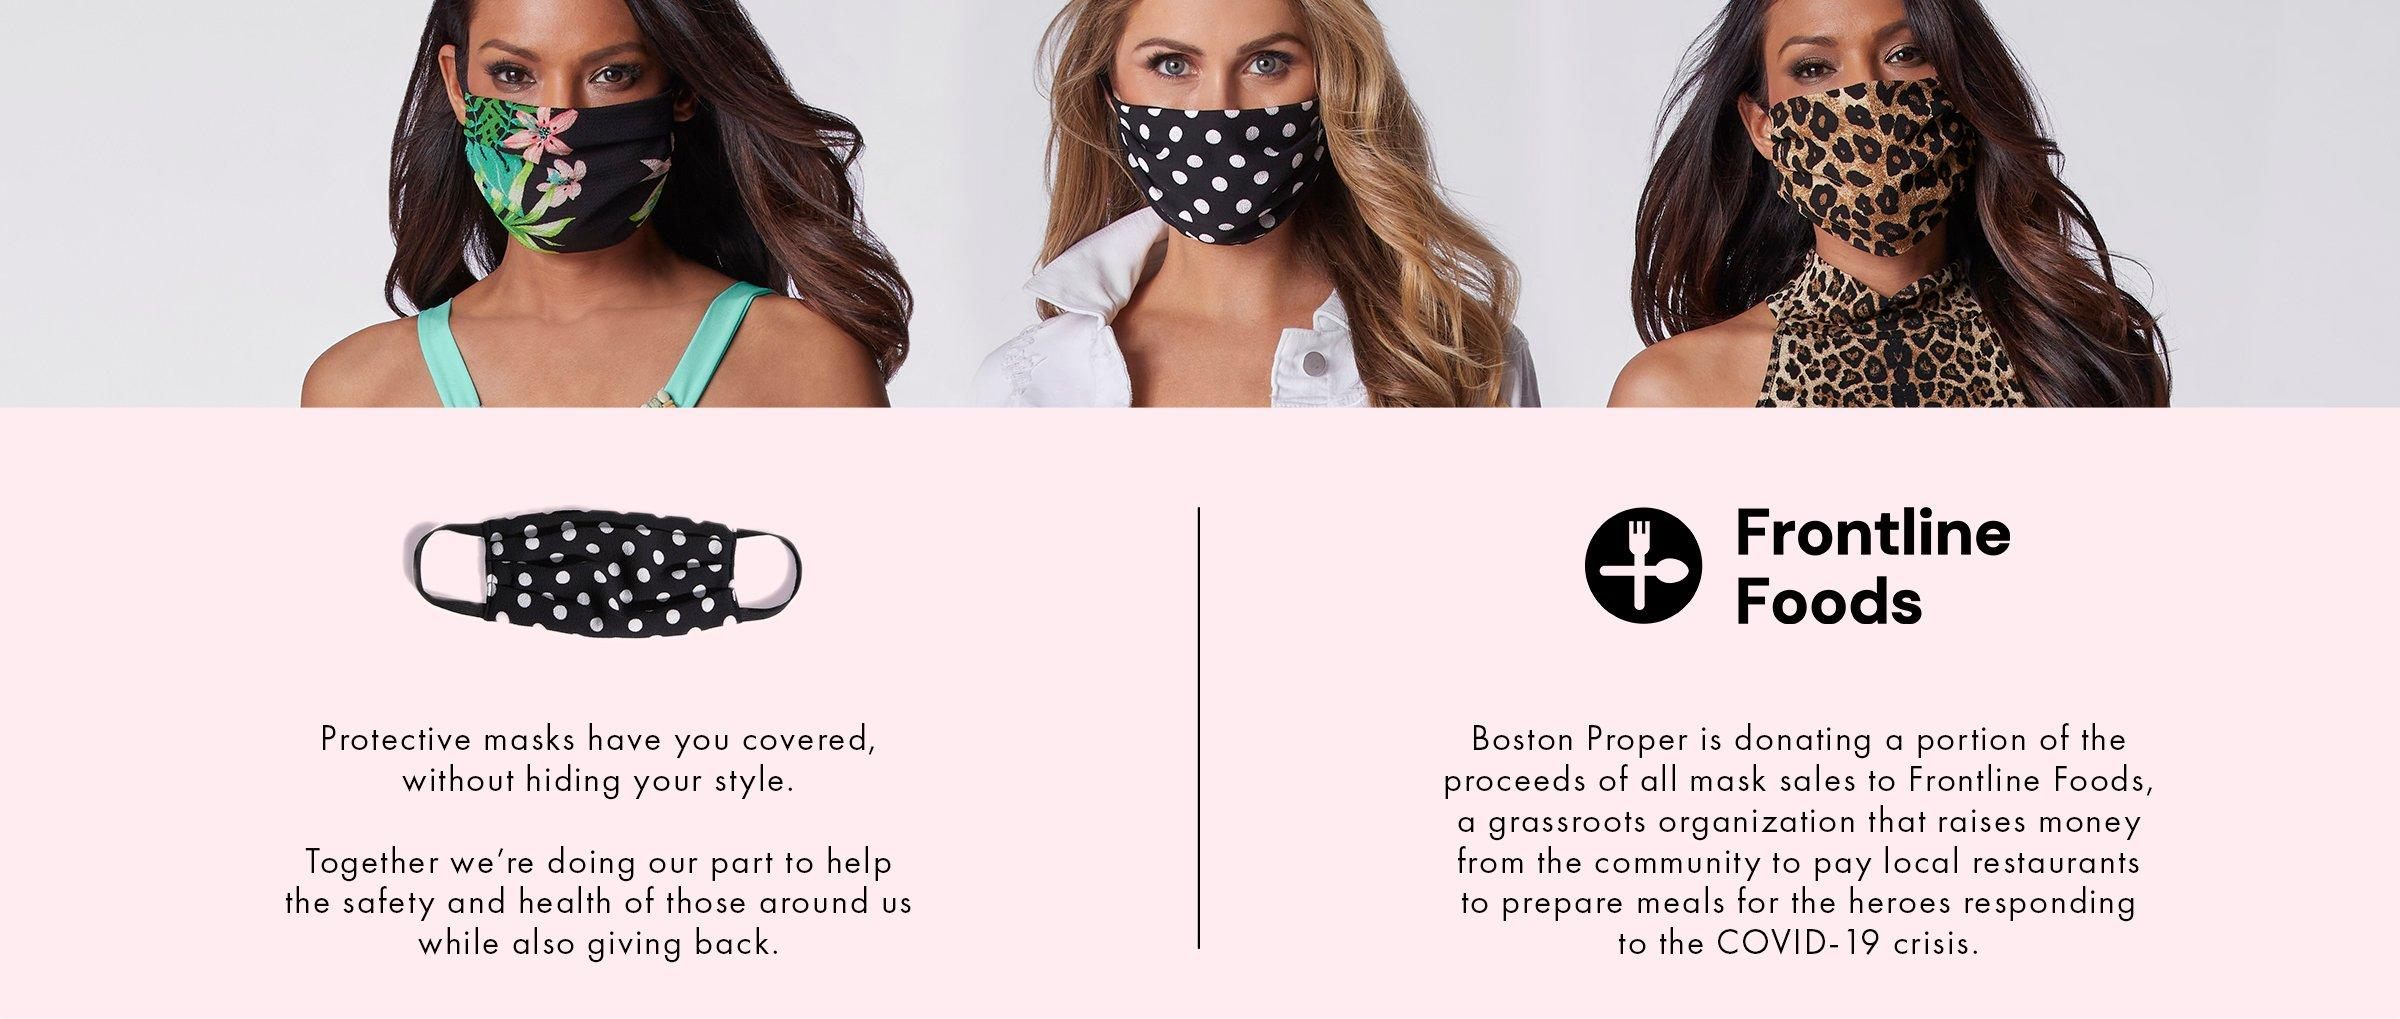 models wearing face masks from left to right: black and white polka dot, black and white gingham, blue and white star print, leopard. black text on pink background: boston proper is donating a portion of the proceeds of all mask sales to frontline foods.